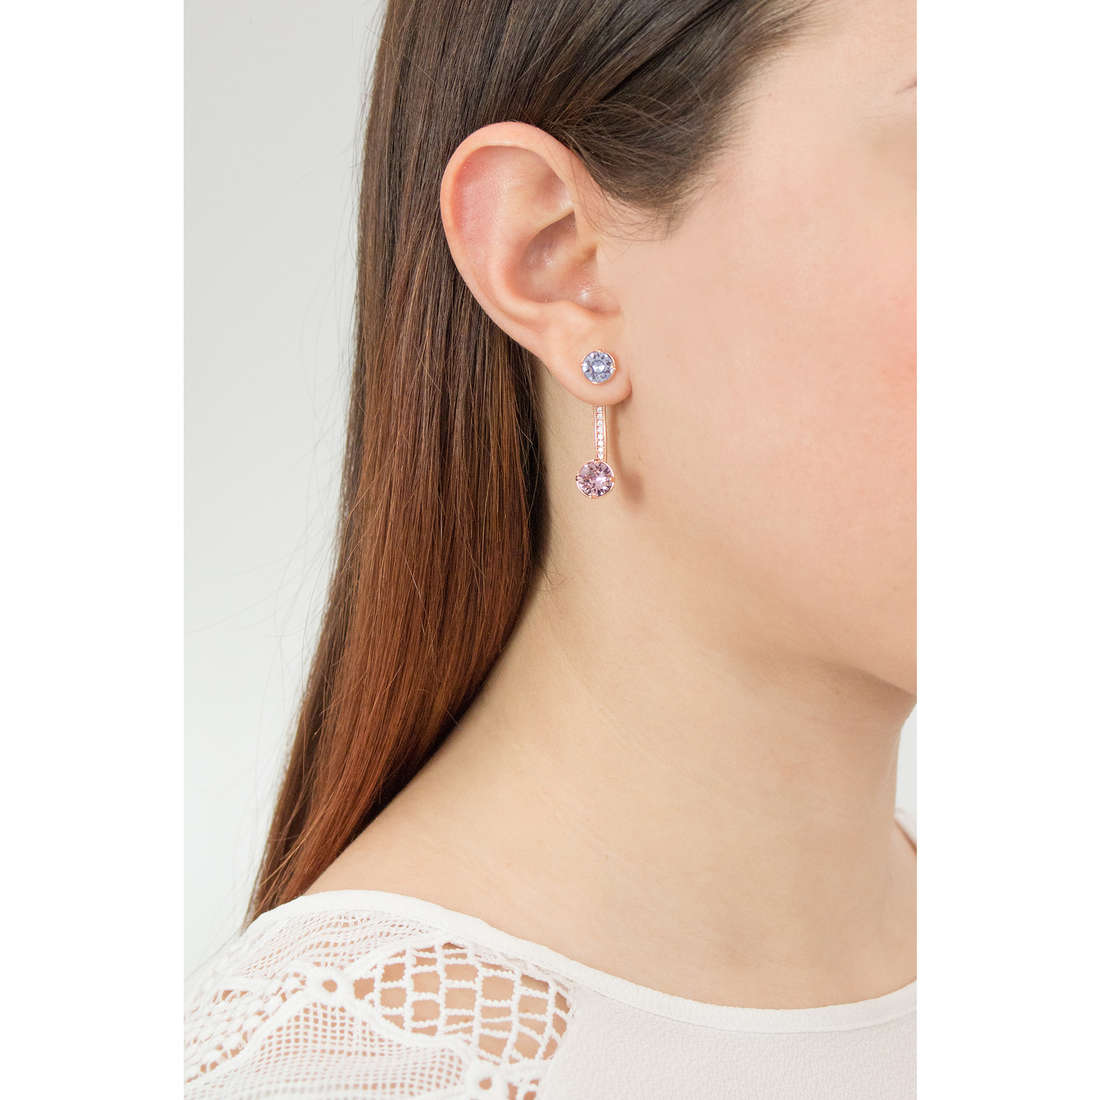 Brosway boucles d'oreille Affinity femme BFF25 photo wearing